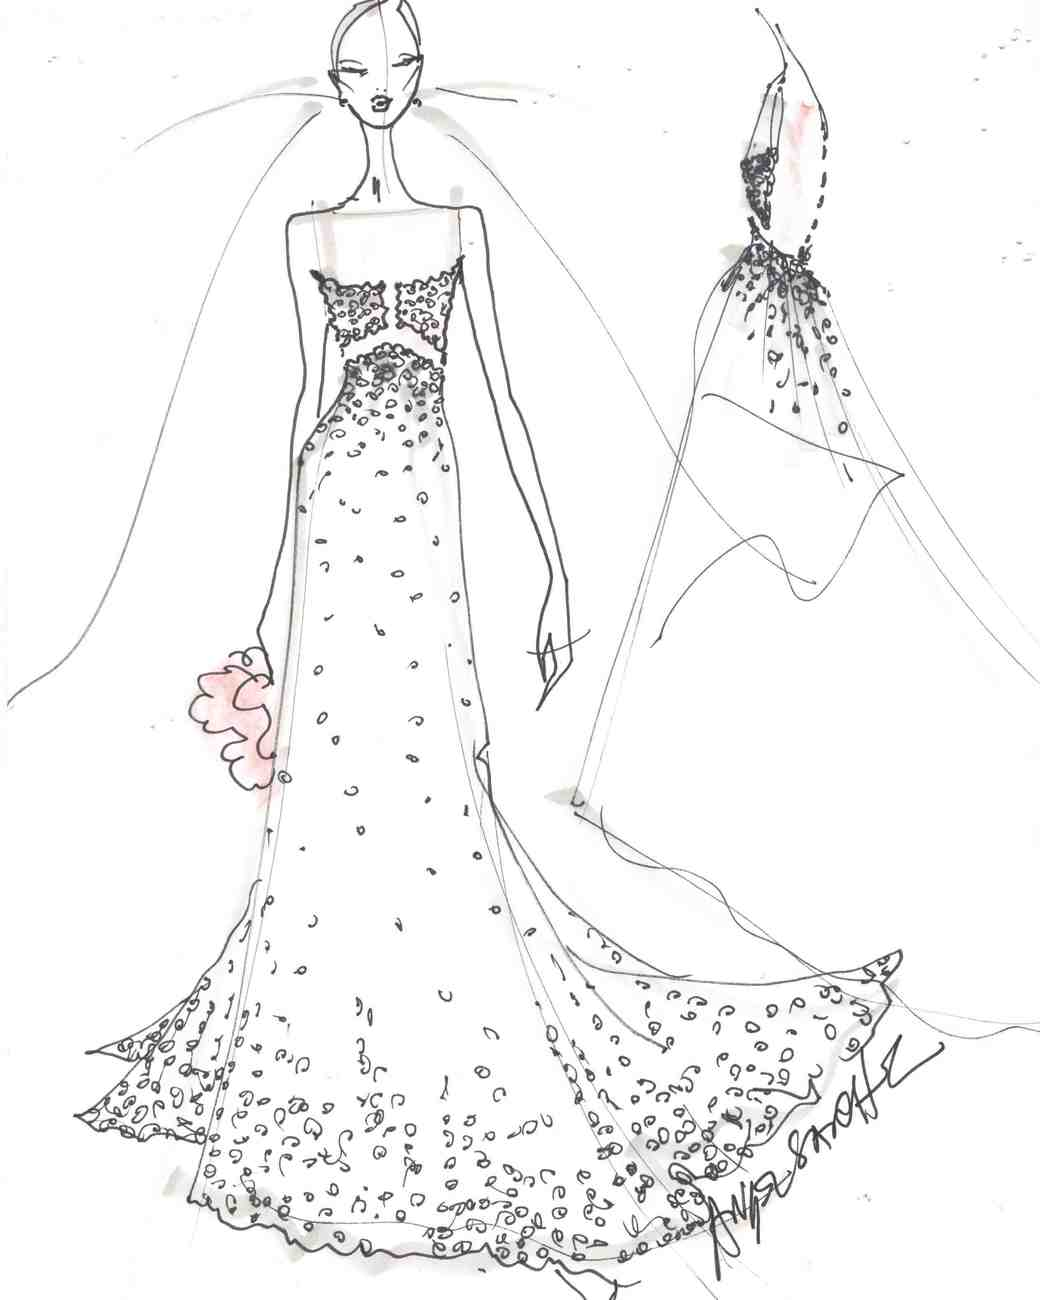 angel-sanchez-bridal-market-ss17-sketch-0416.jpg